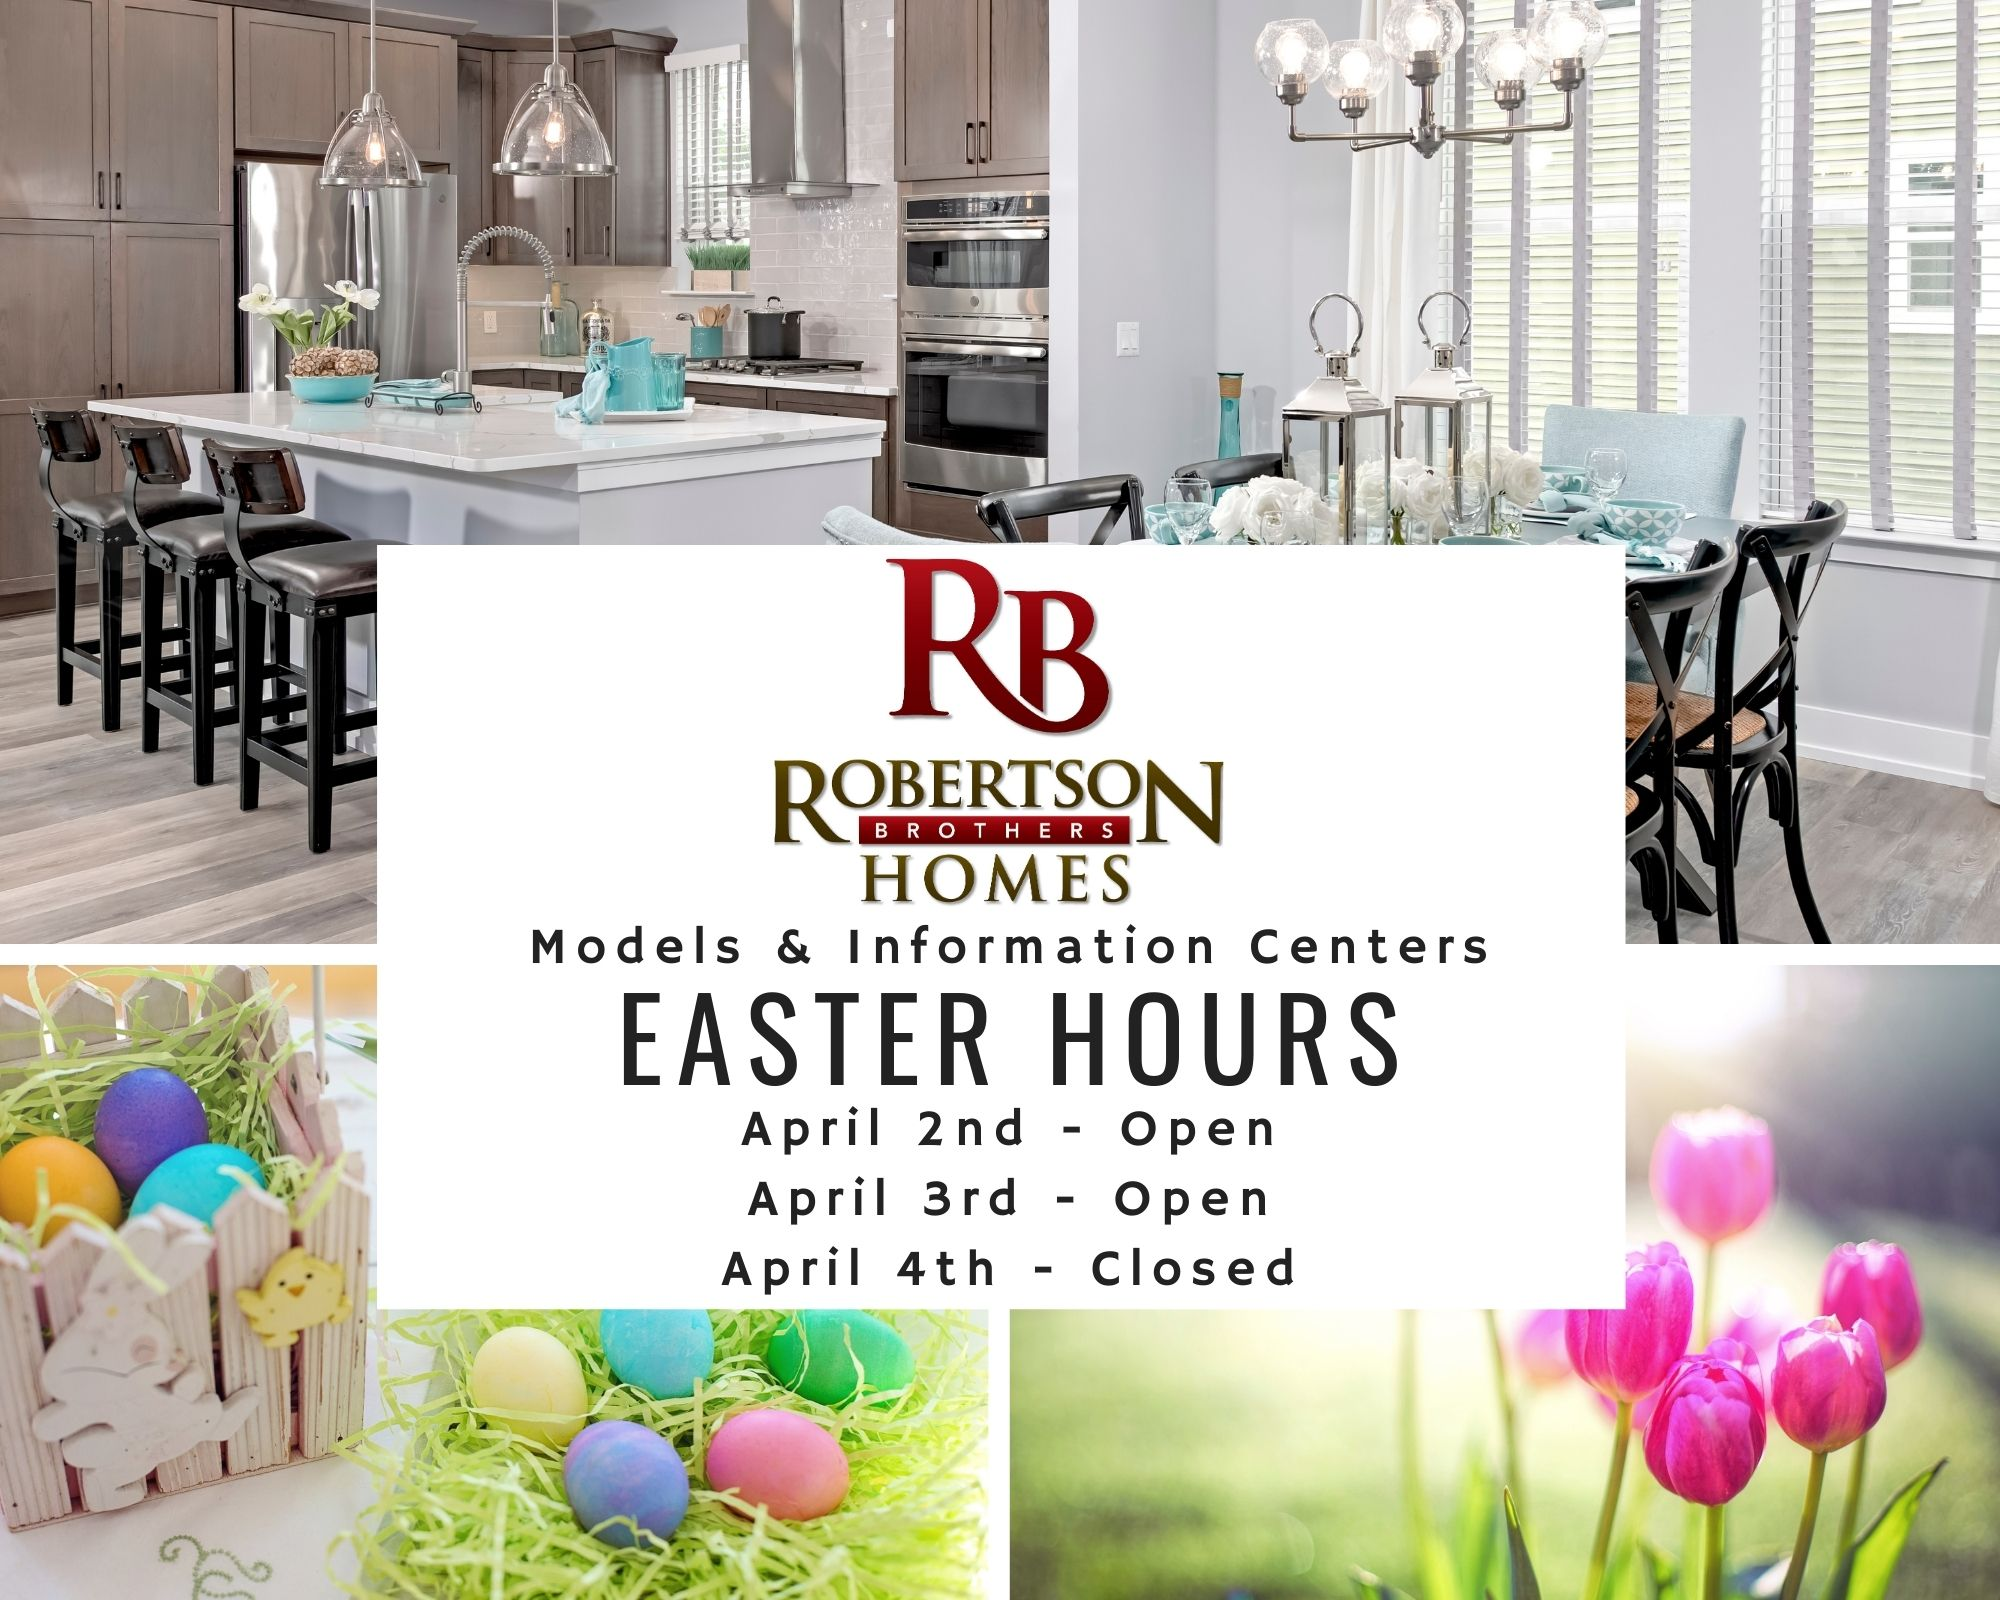 Easter hours of condo builder Robertson Homes in Michigan